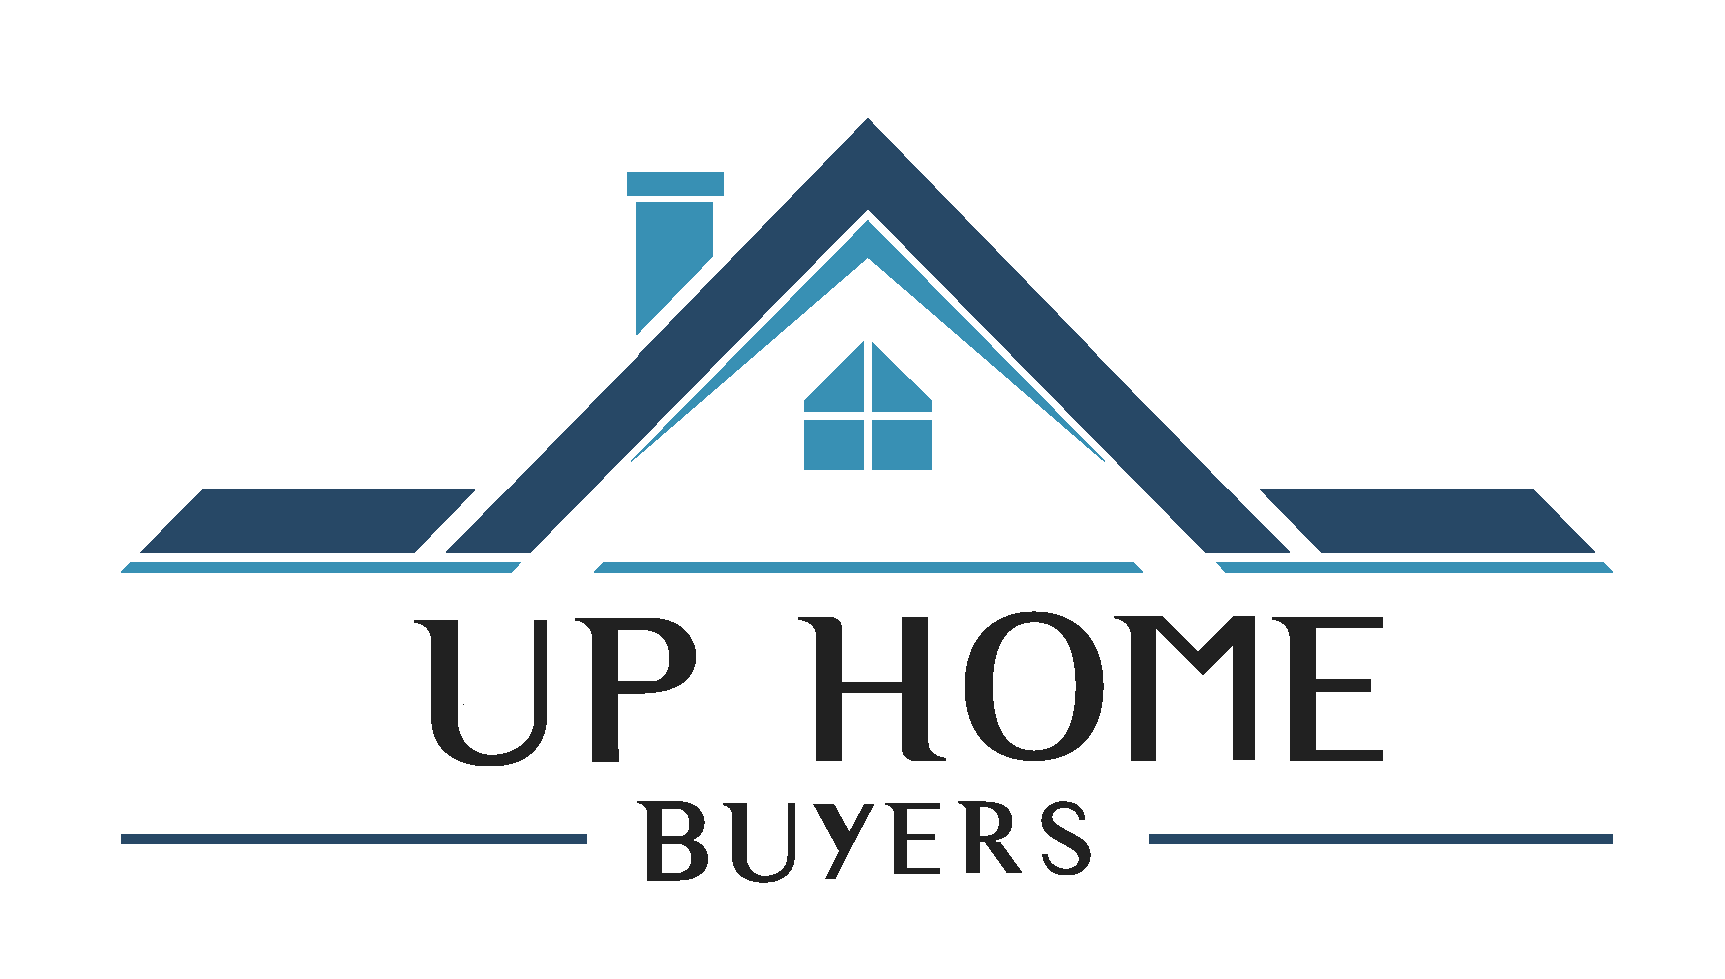 UP Home Buyers  logo